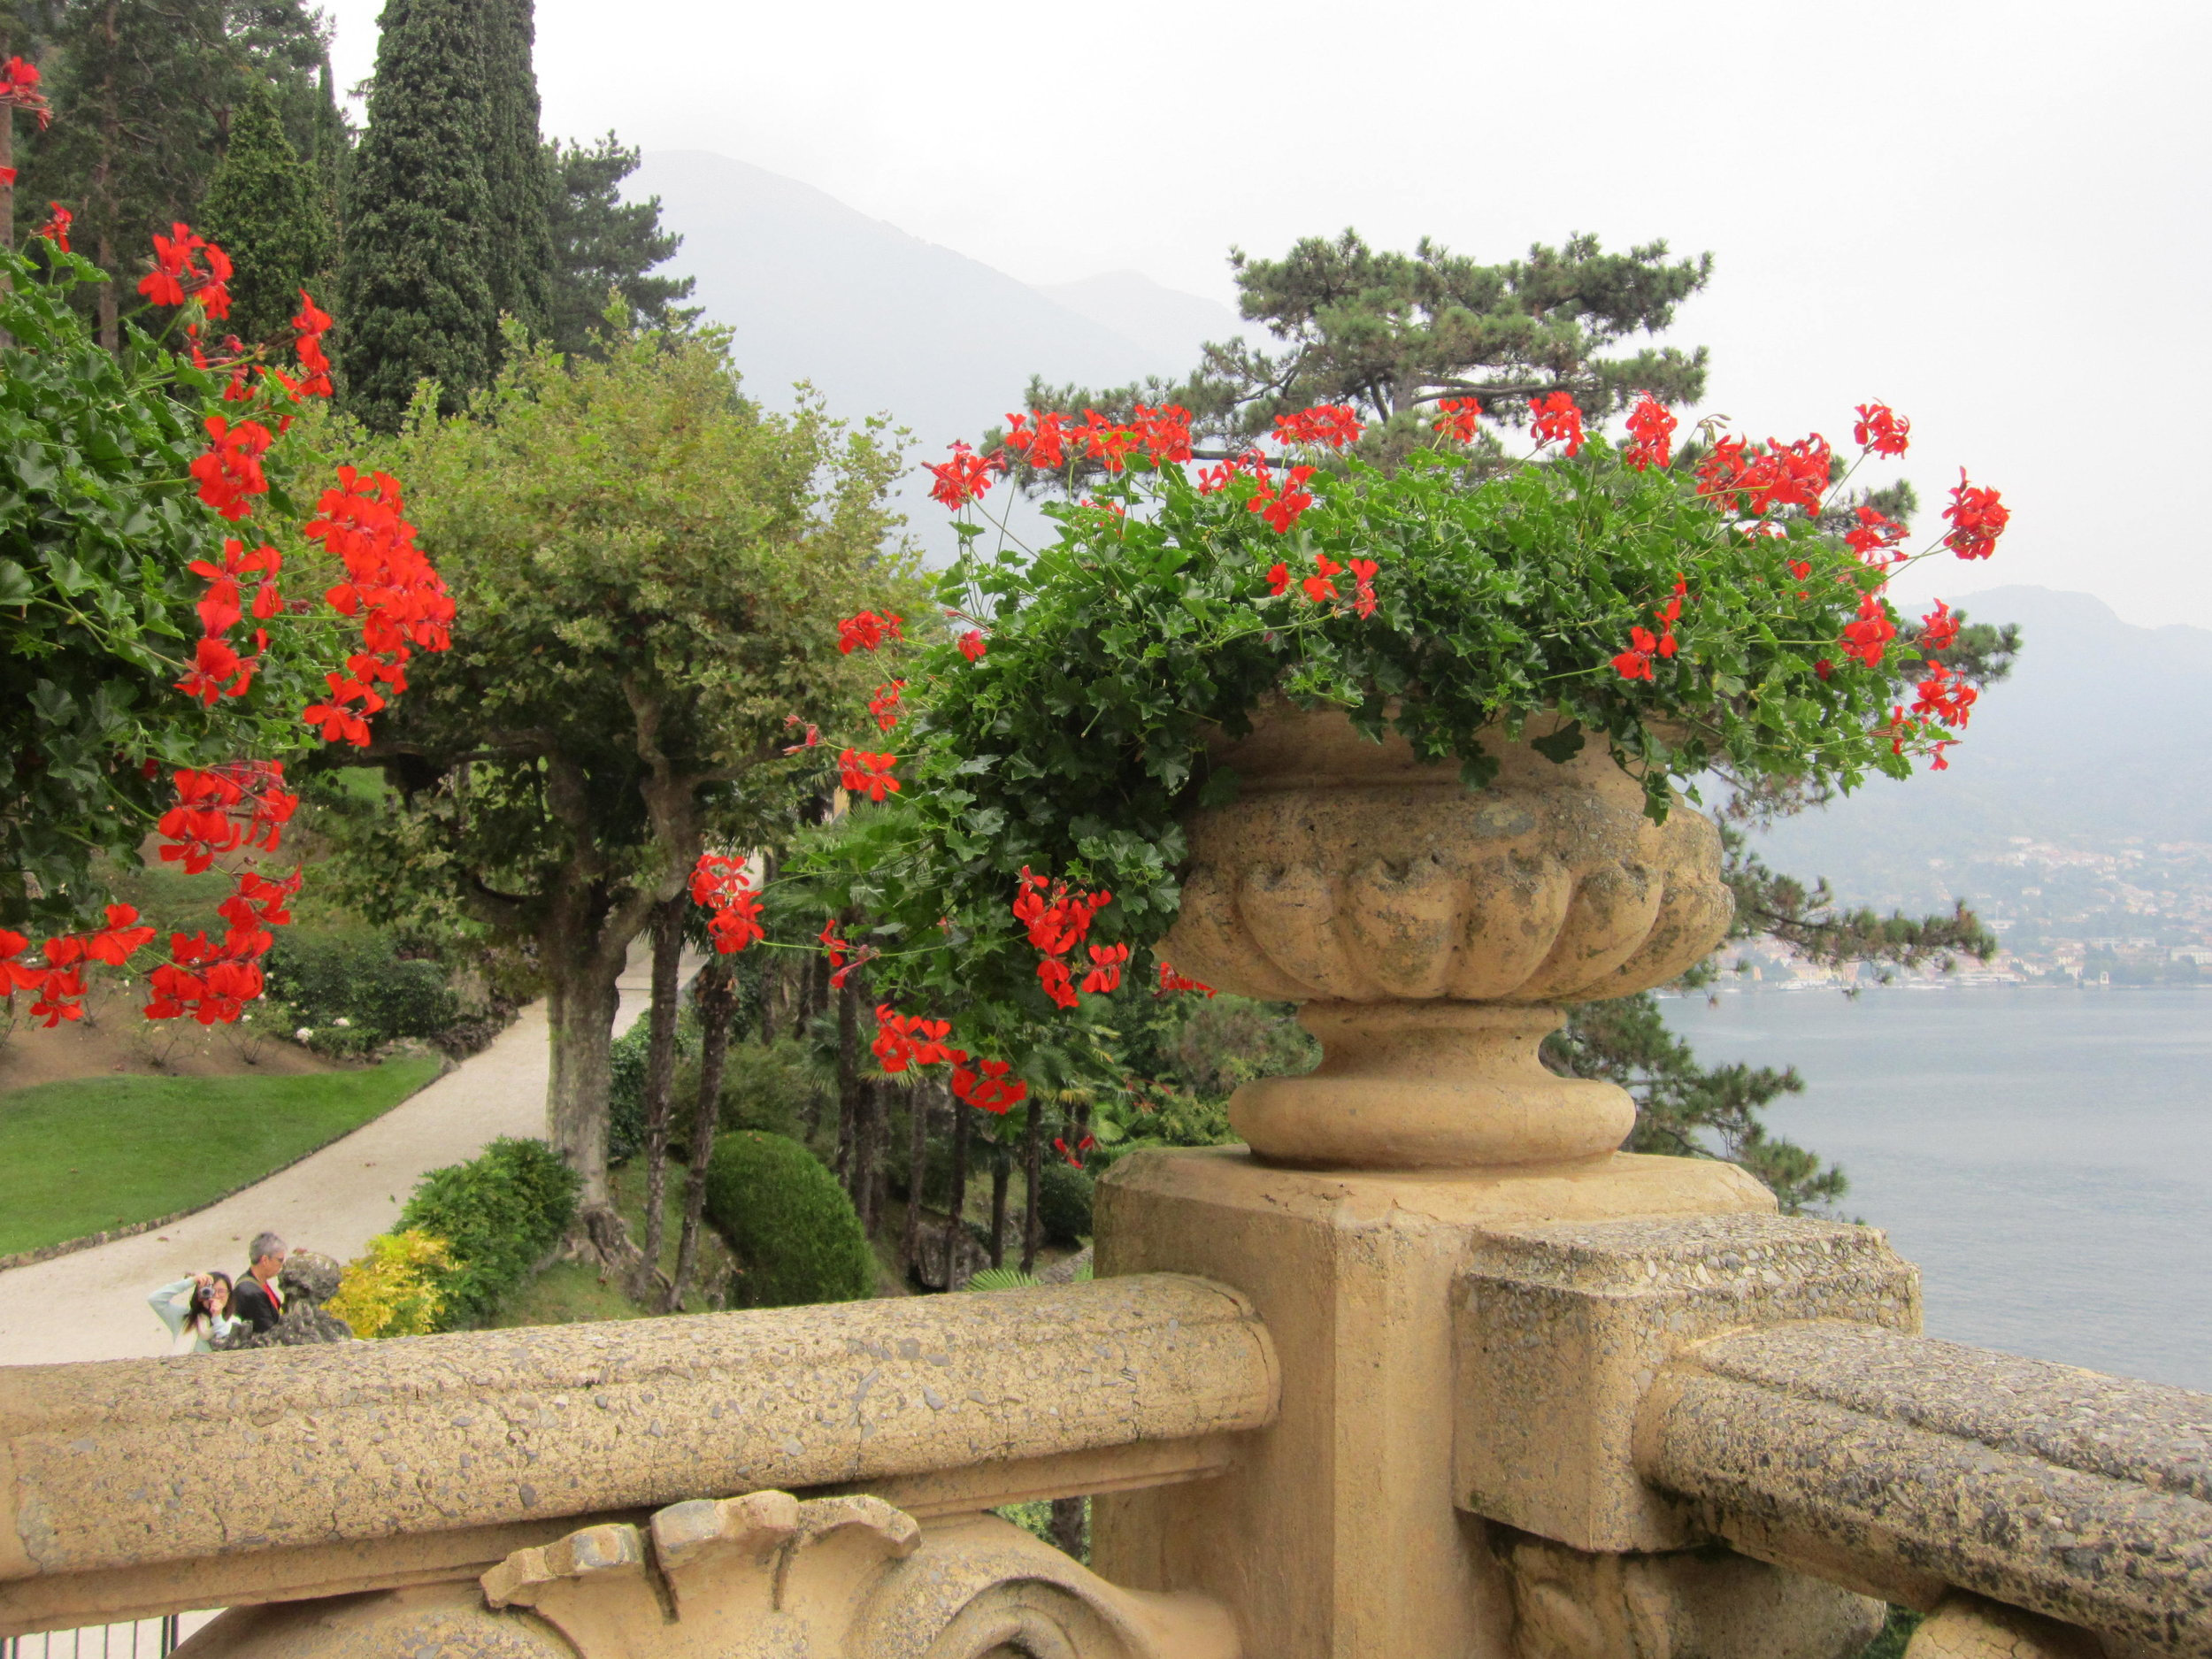 One of many beautiful flower-filled urns which line the garden paths.